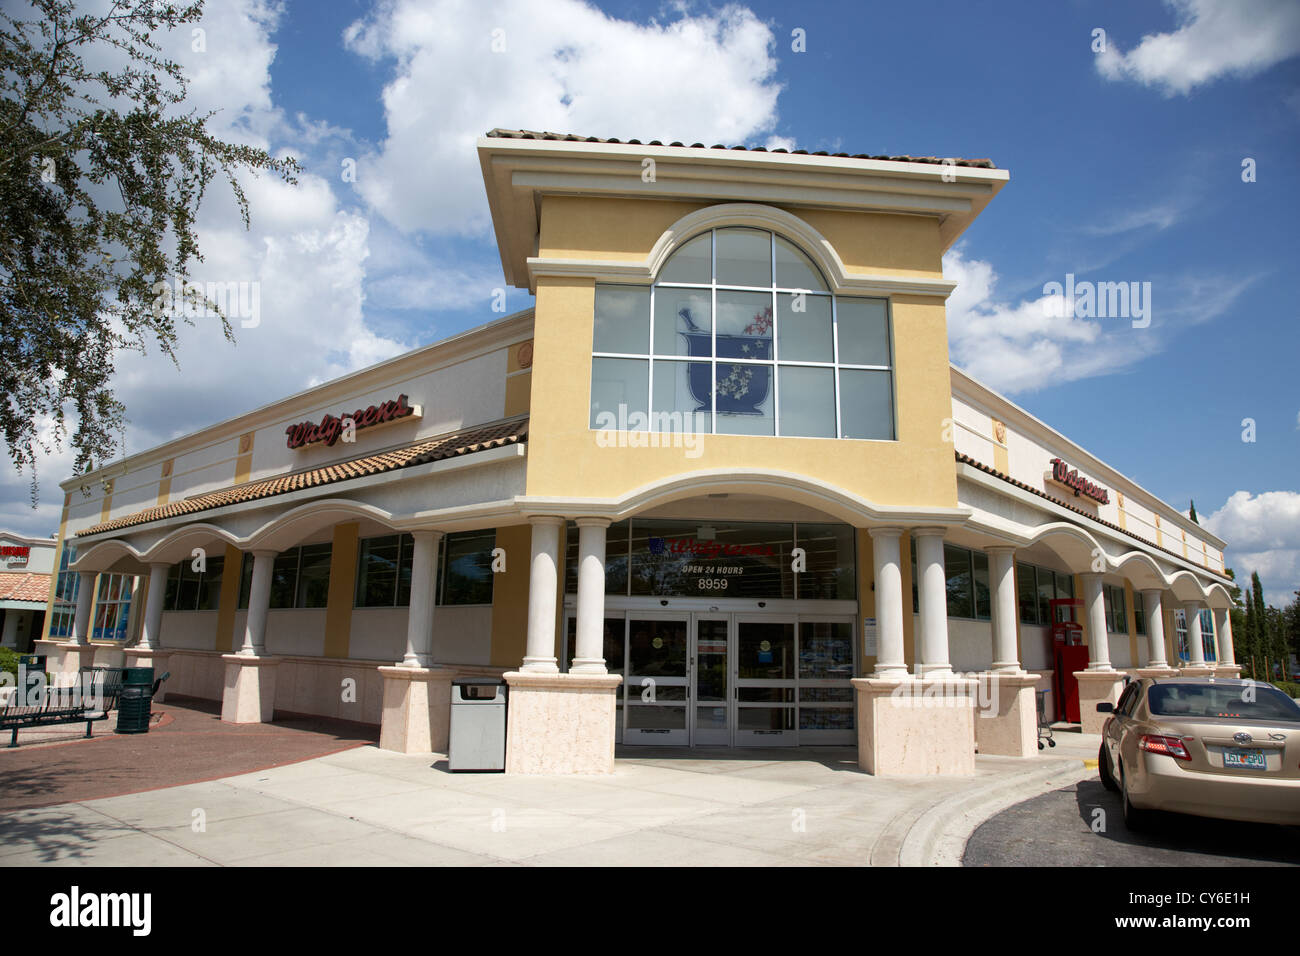 walgreens drug store orlando florida usa - Stock Image